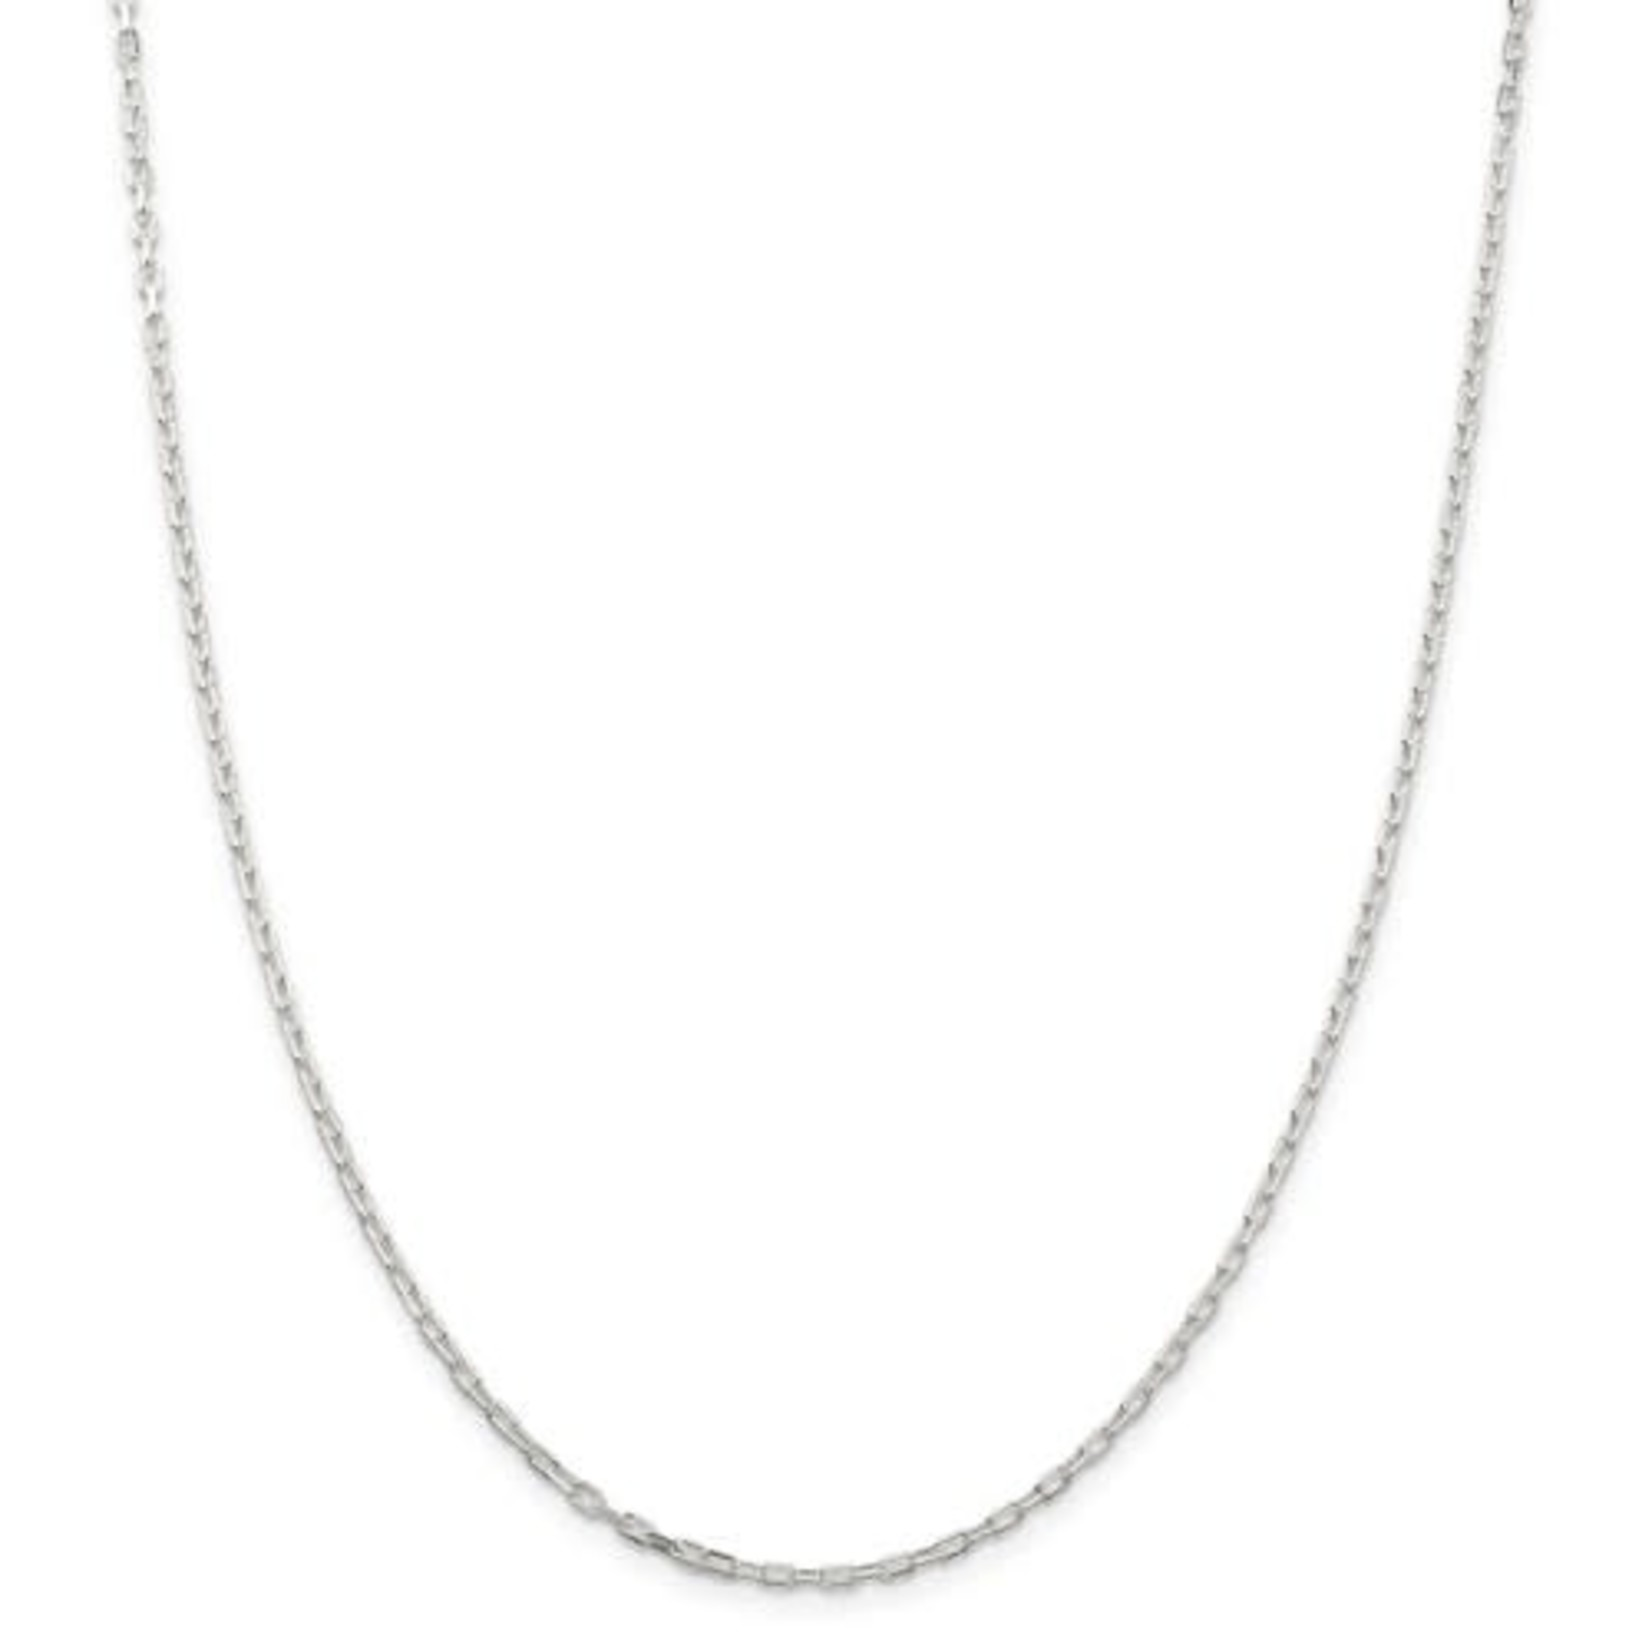 This Is Life Sterling Silver 2.2mm Fancy Diamond-Cut Open Link Cable 16 Inch Chain